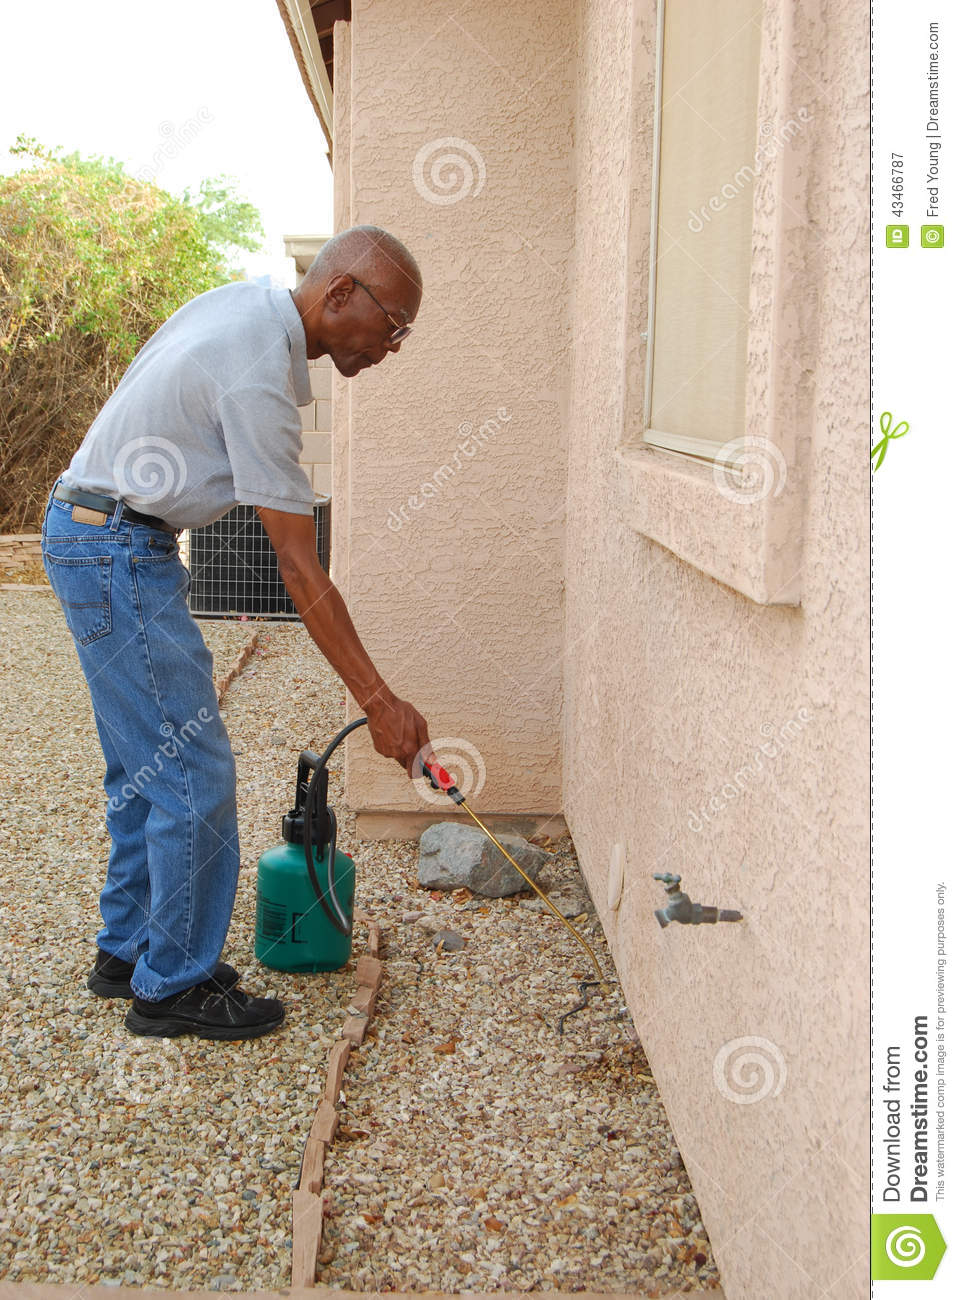 Do It Yourself Home Design: Pest Control Stock Image. Image Of American, Home, Senior